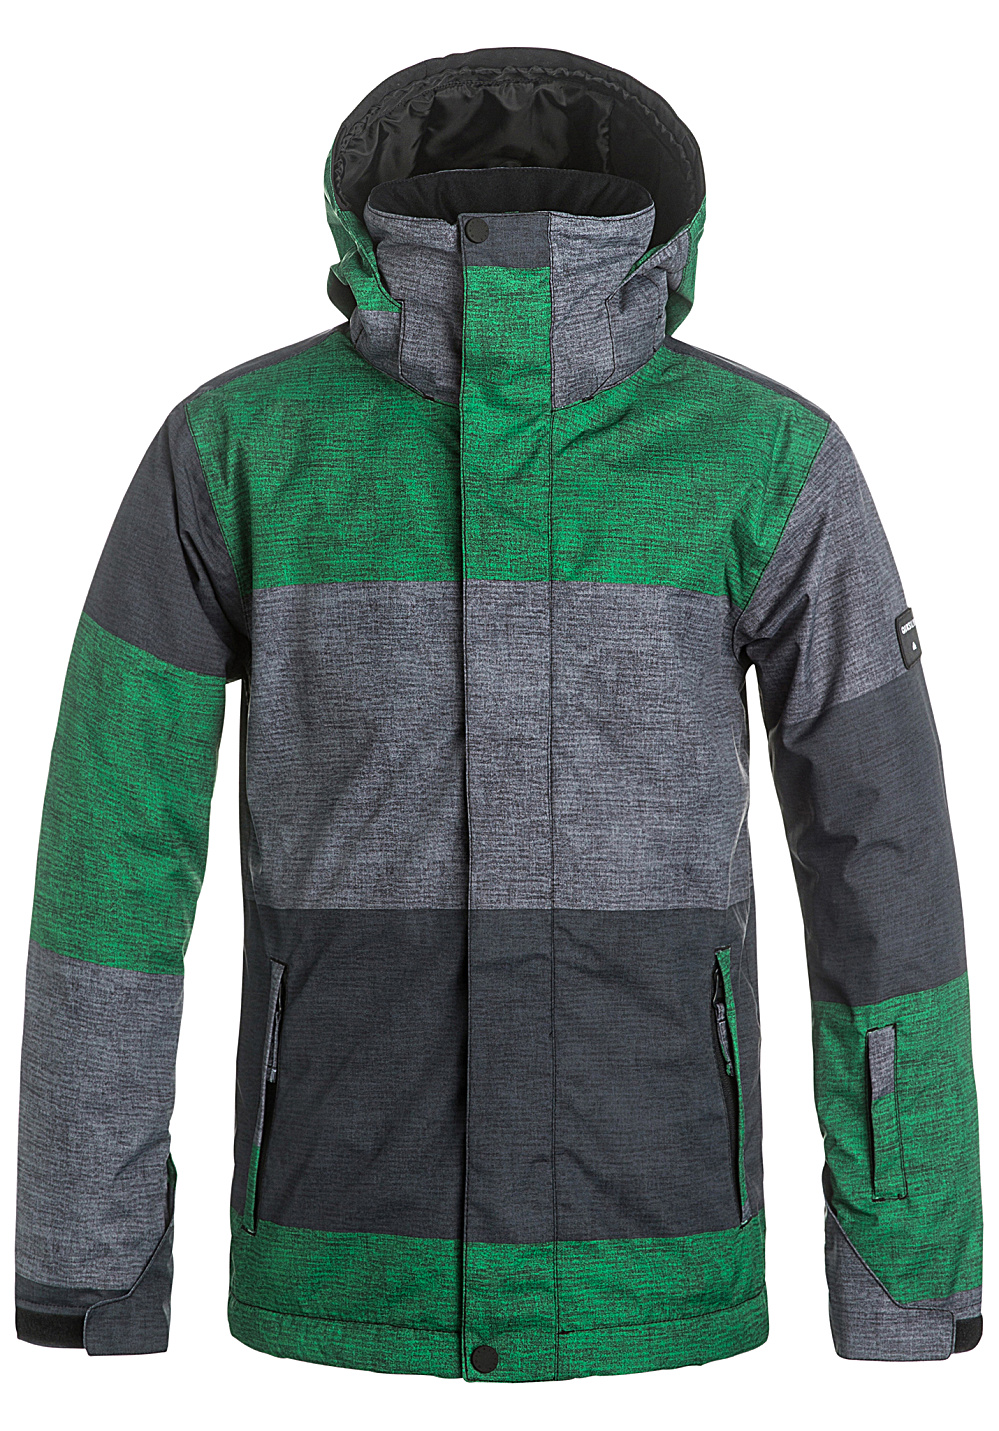 quiksilver mission print veste de snowboard pour gar on vert planet sports. Black Bedroom Furniture Sets. Home Design Ideas